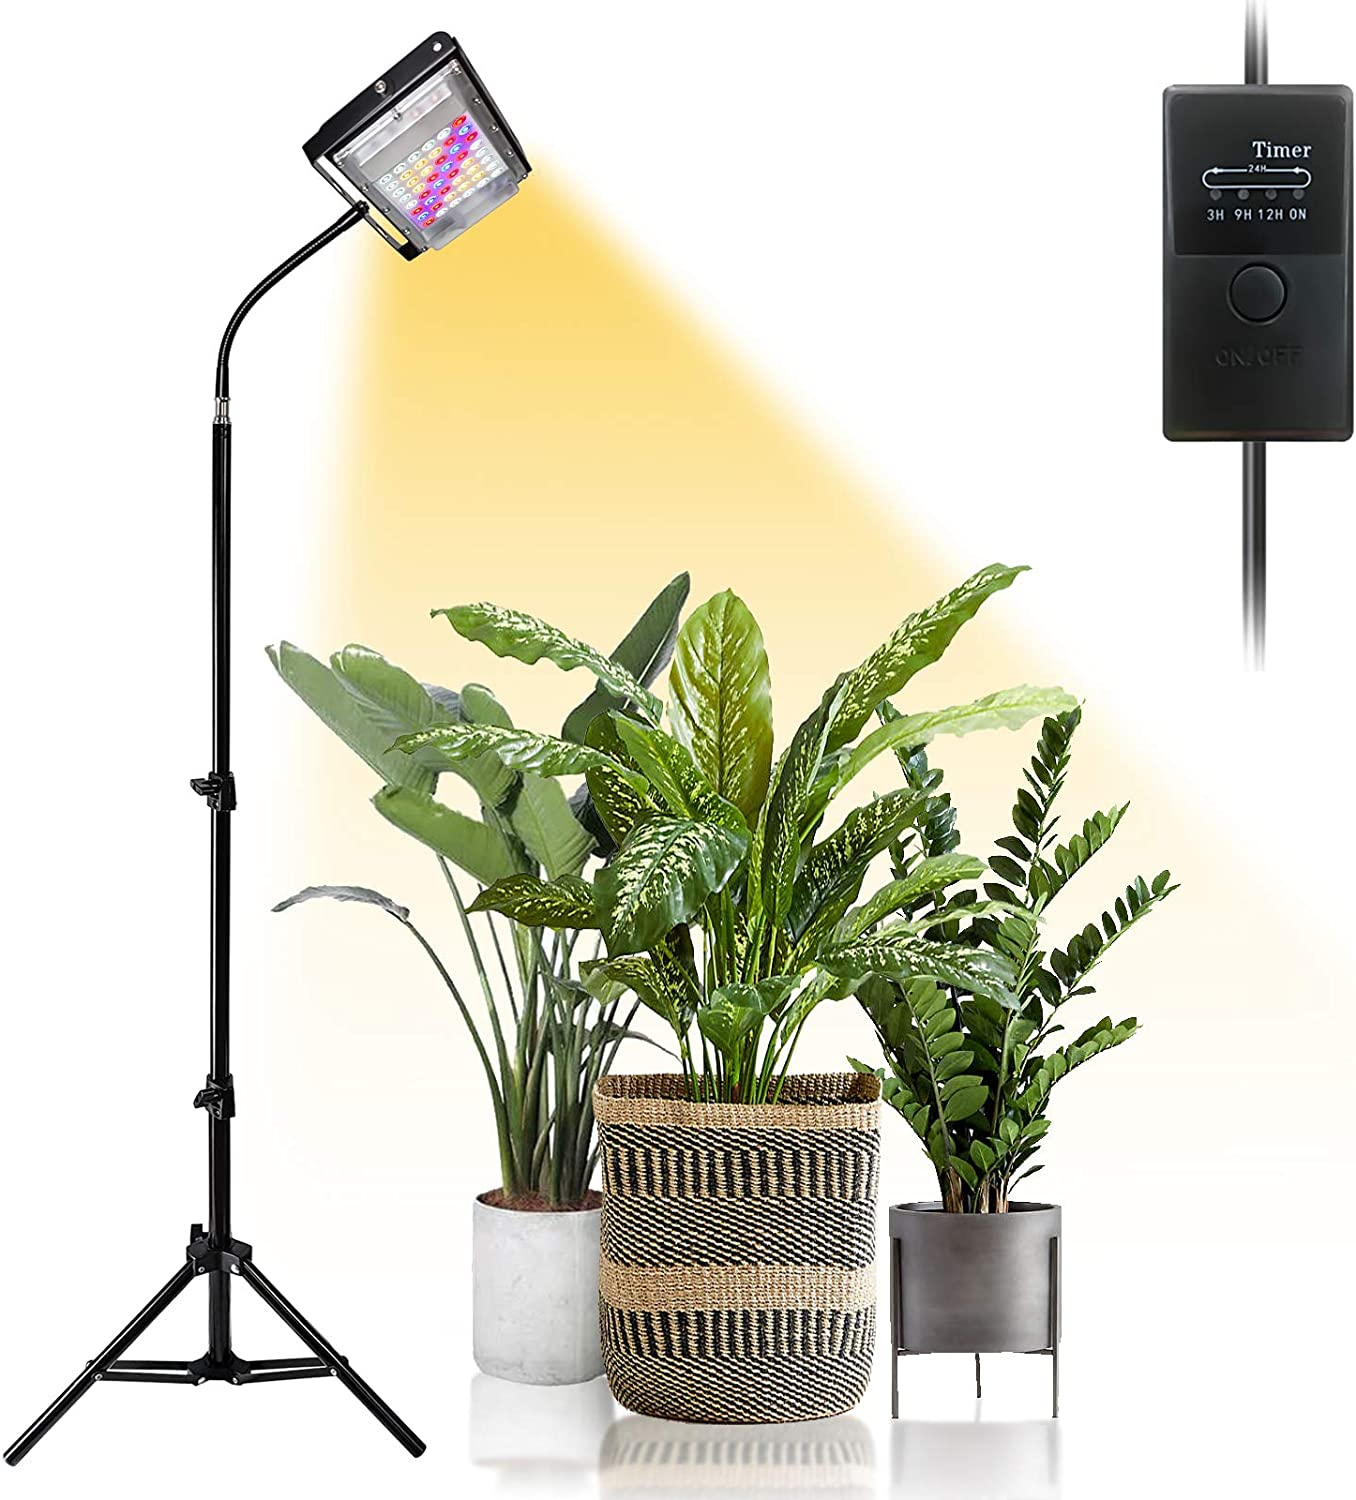 Grow Light with Stand, Fujiki 150W LED Floor Growing Lights for Indoor Plants, Full Spectrum Plant Lamp with 3/9/12H Timer, Auto ON/Off, Adjustable Stand 15-47 inches & Gooseneck